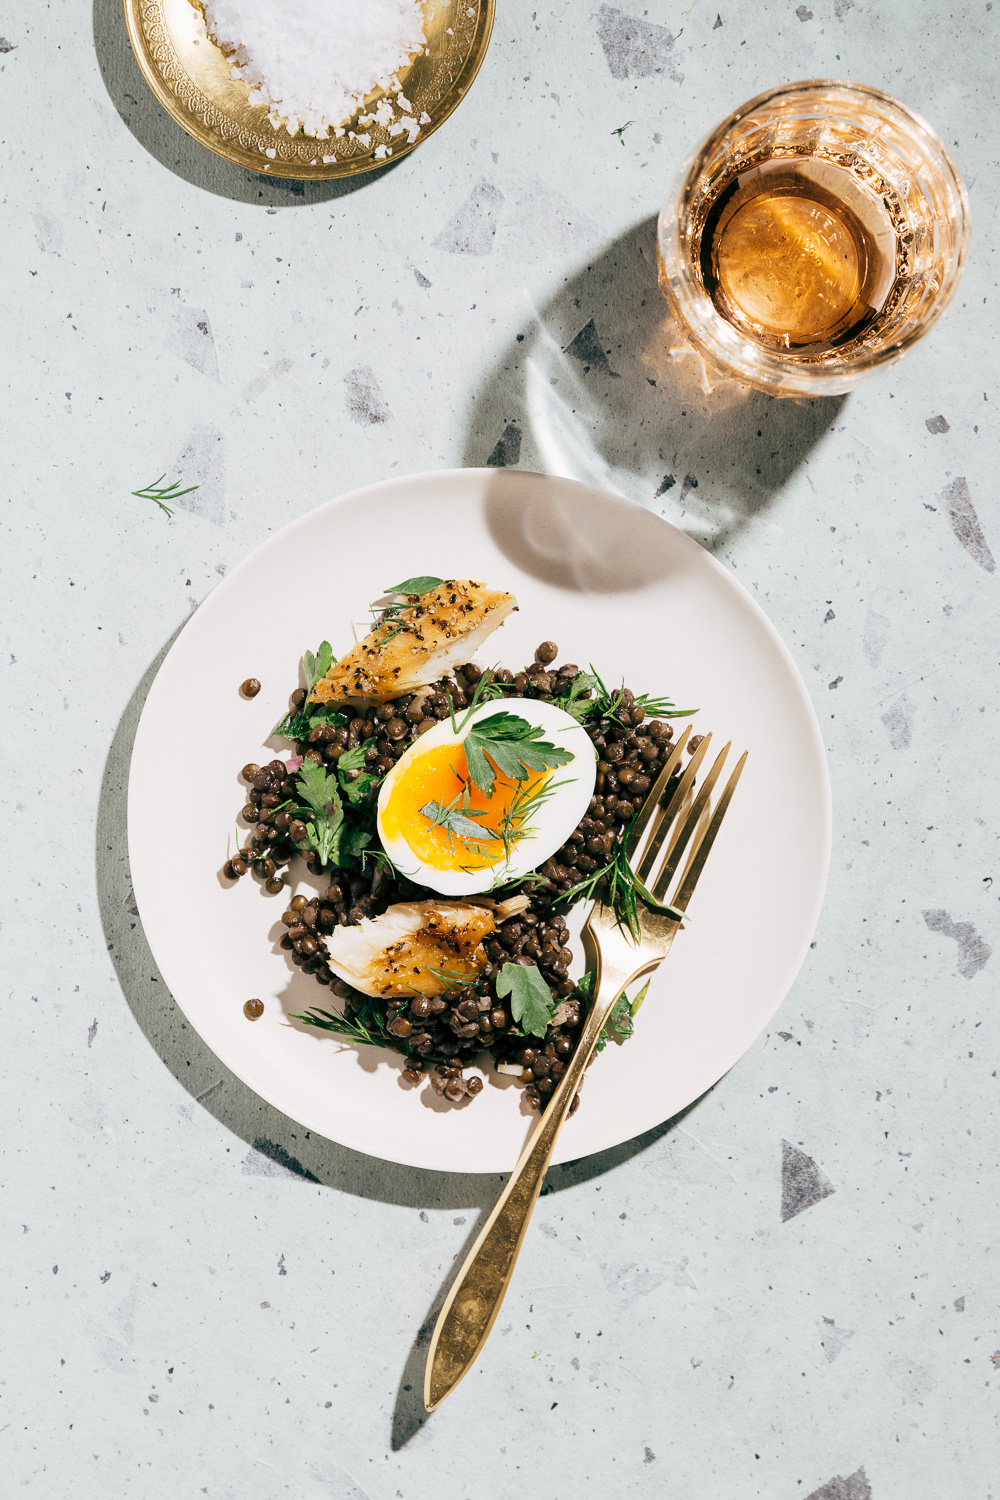 lentil salad with smoked mackerel and soft boiled eggs // image + styling: Olaiya Land